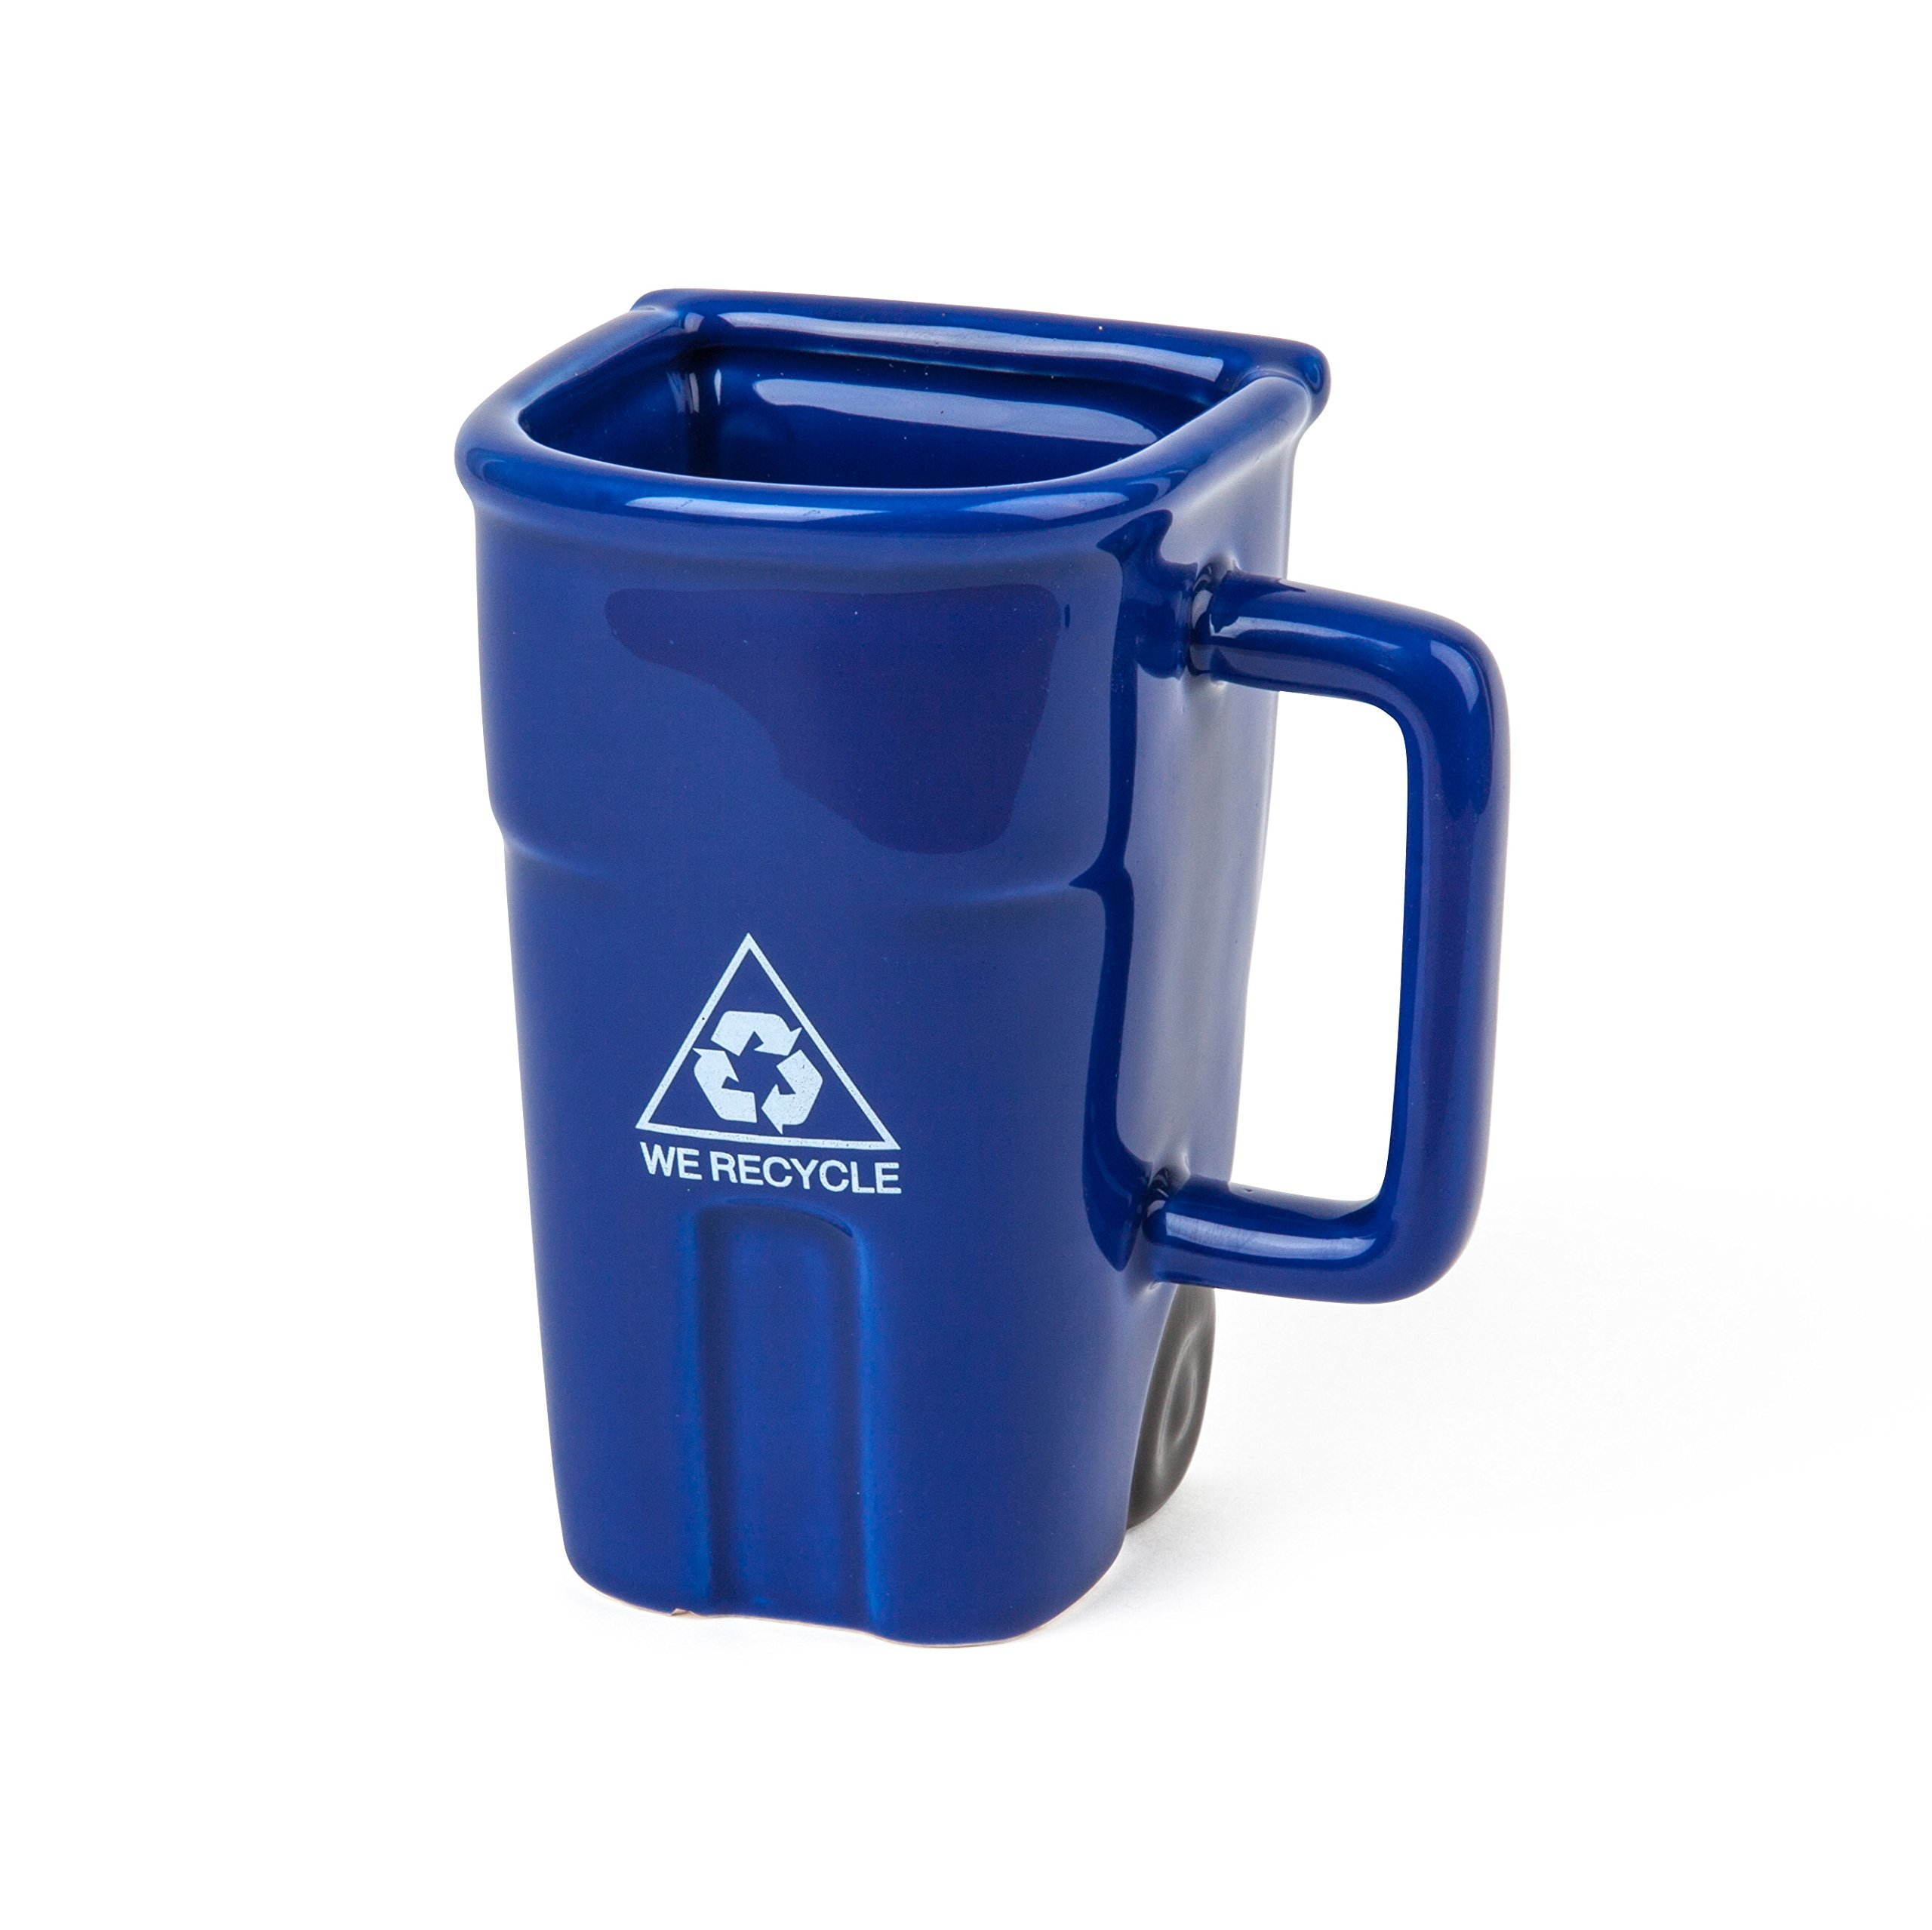 BigMouth Inc The Recycling Bin Mug, Fun Blue Ceramic Trash Can Drinking Mug for Coffee or Tea, Holds up to 12 oz.